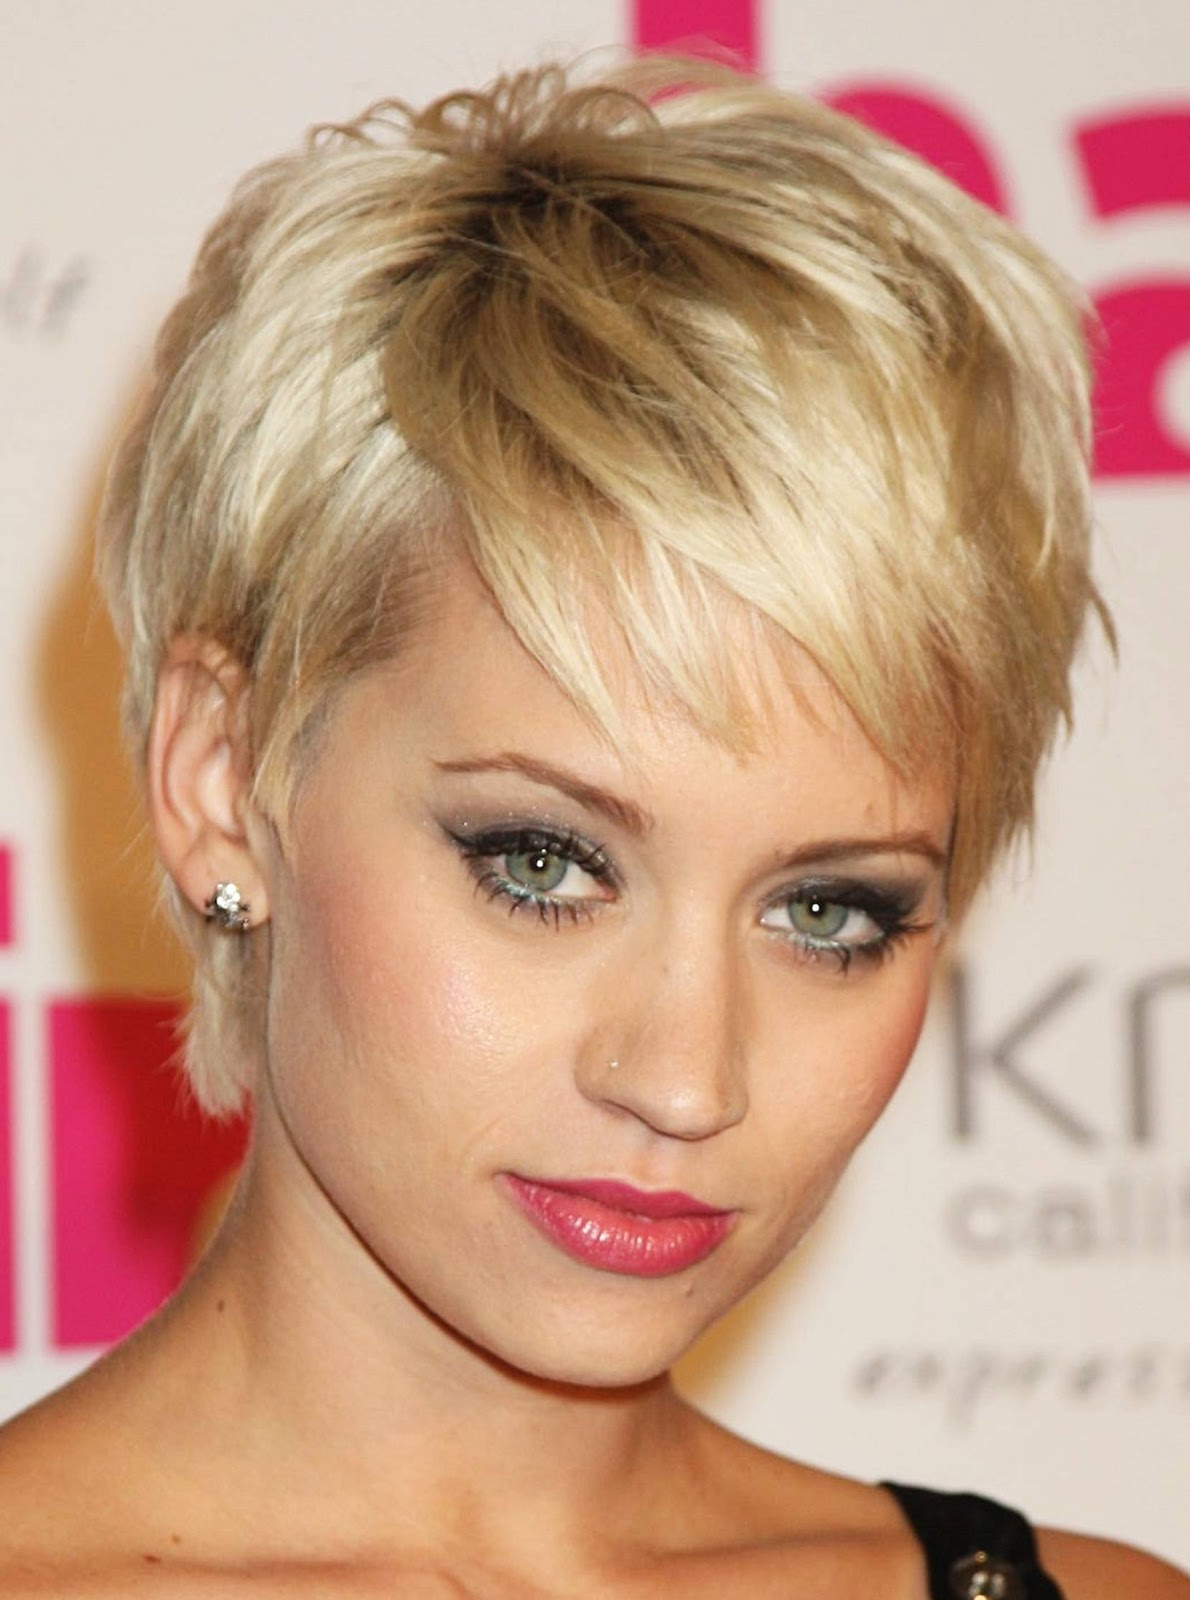 30 Best Short Hairstyle For Women - The WoW Style